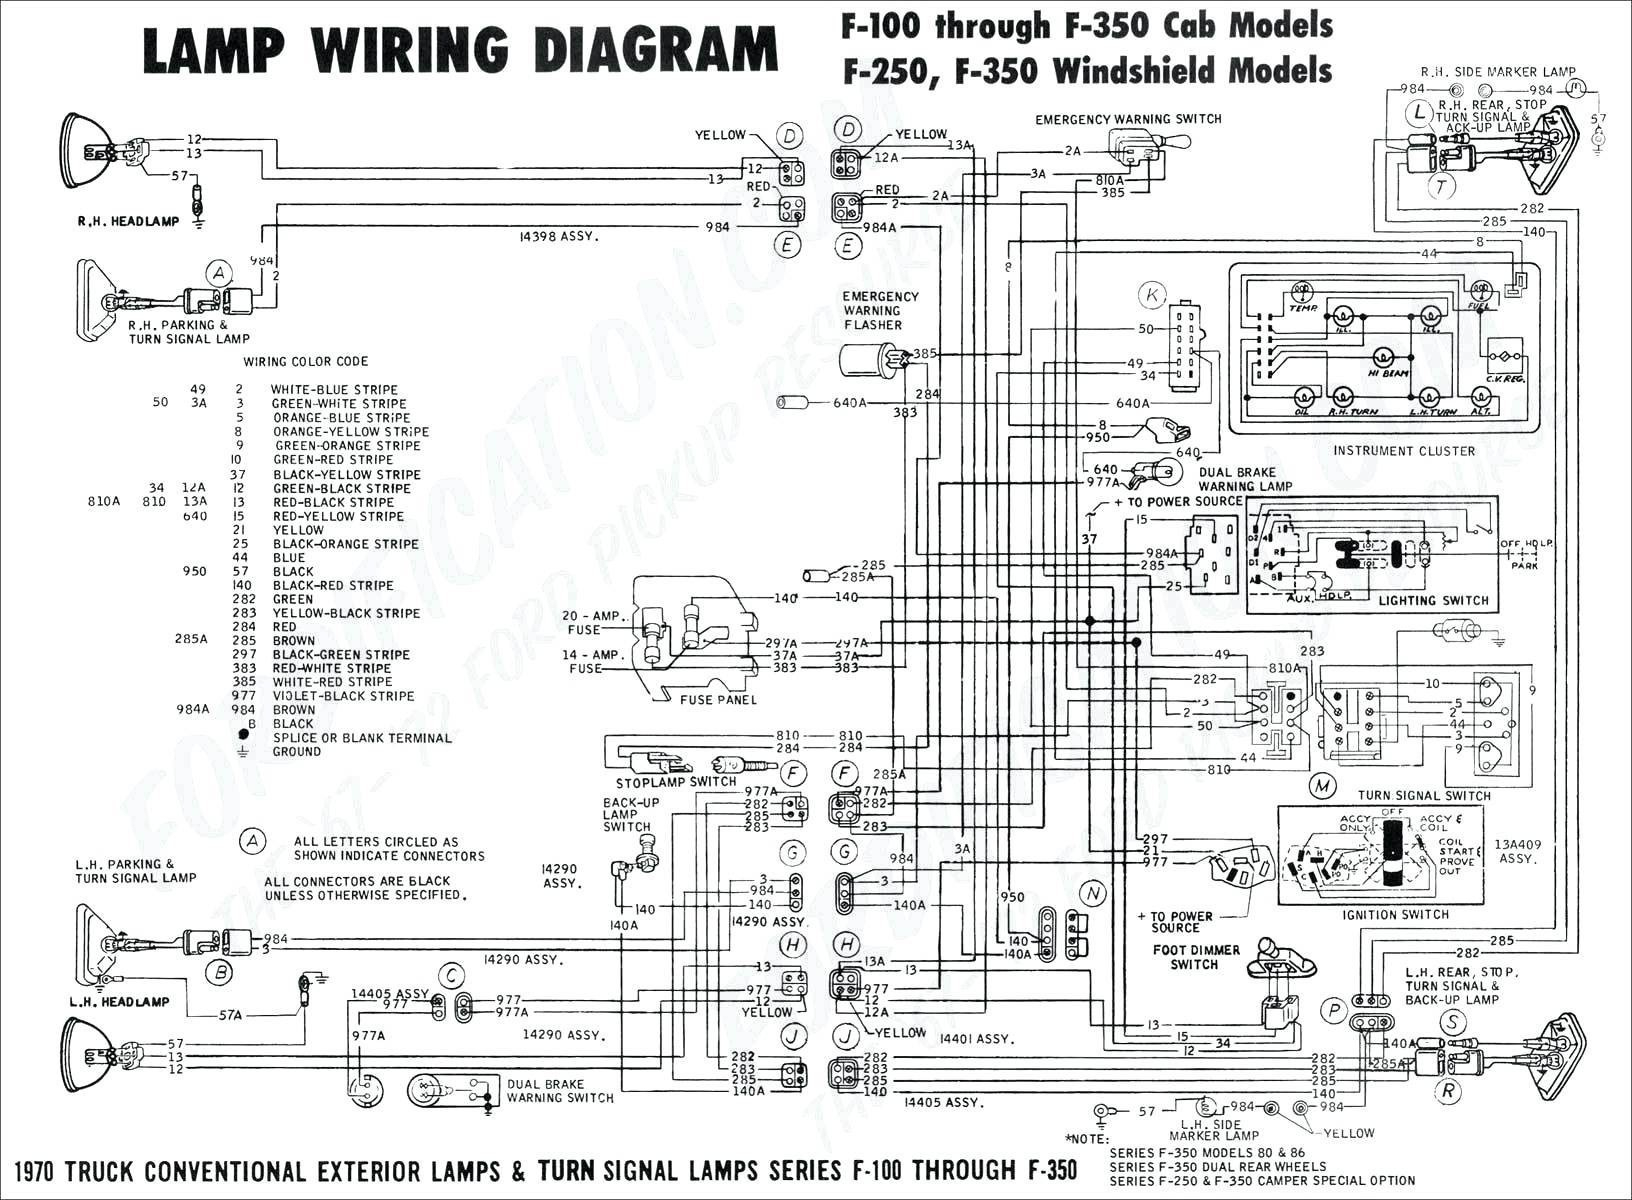 Wiring Diagram for Power Mirrors On Dodge 2004 2500 8cd6a1 Bmw Tail Light Wiring Of Wiring Diagram for Power Mirrors On Dodge 2004 2500